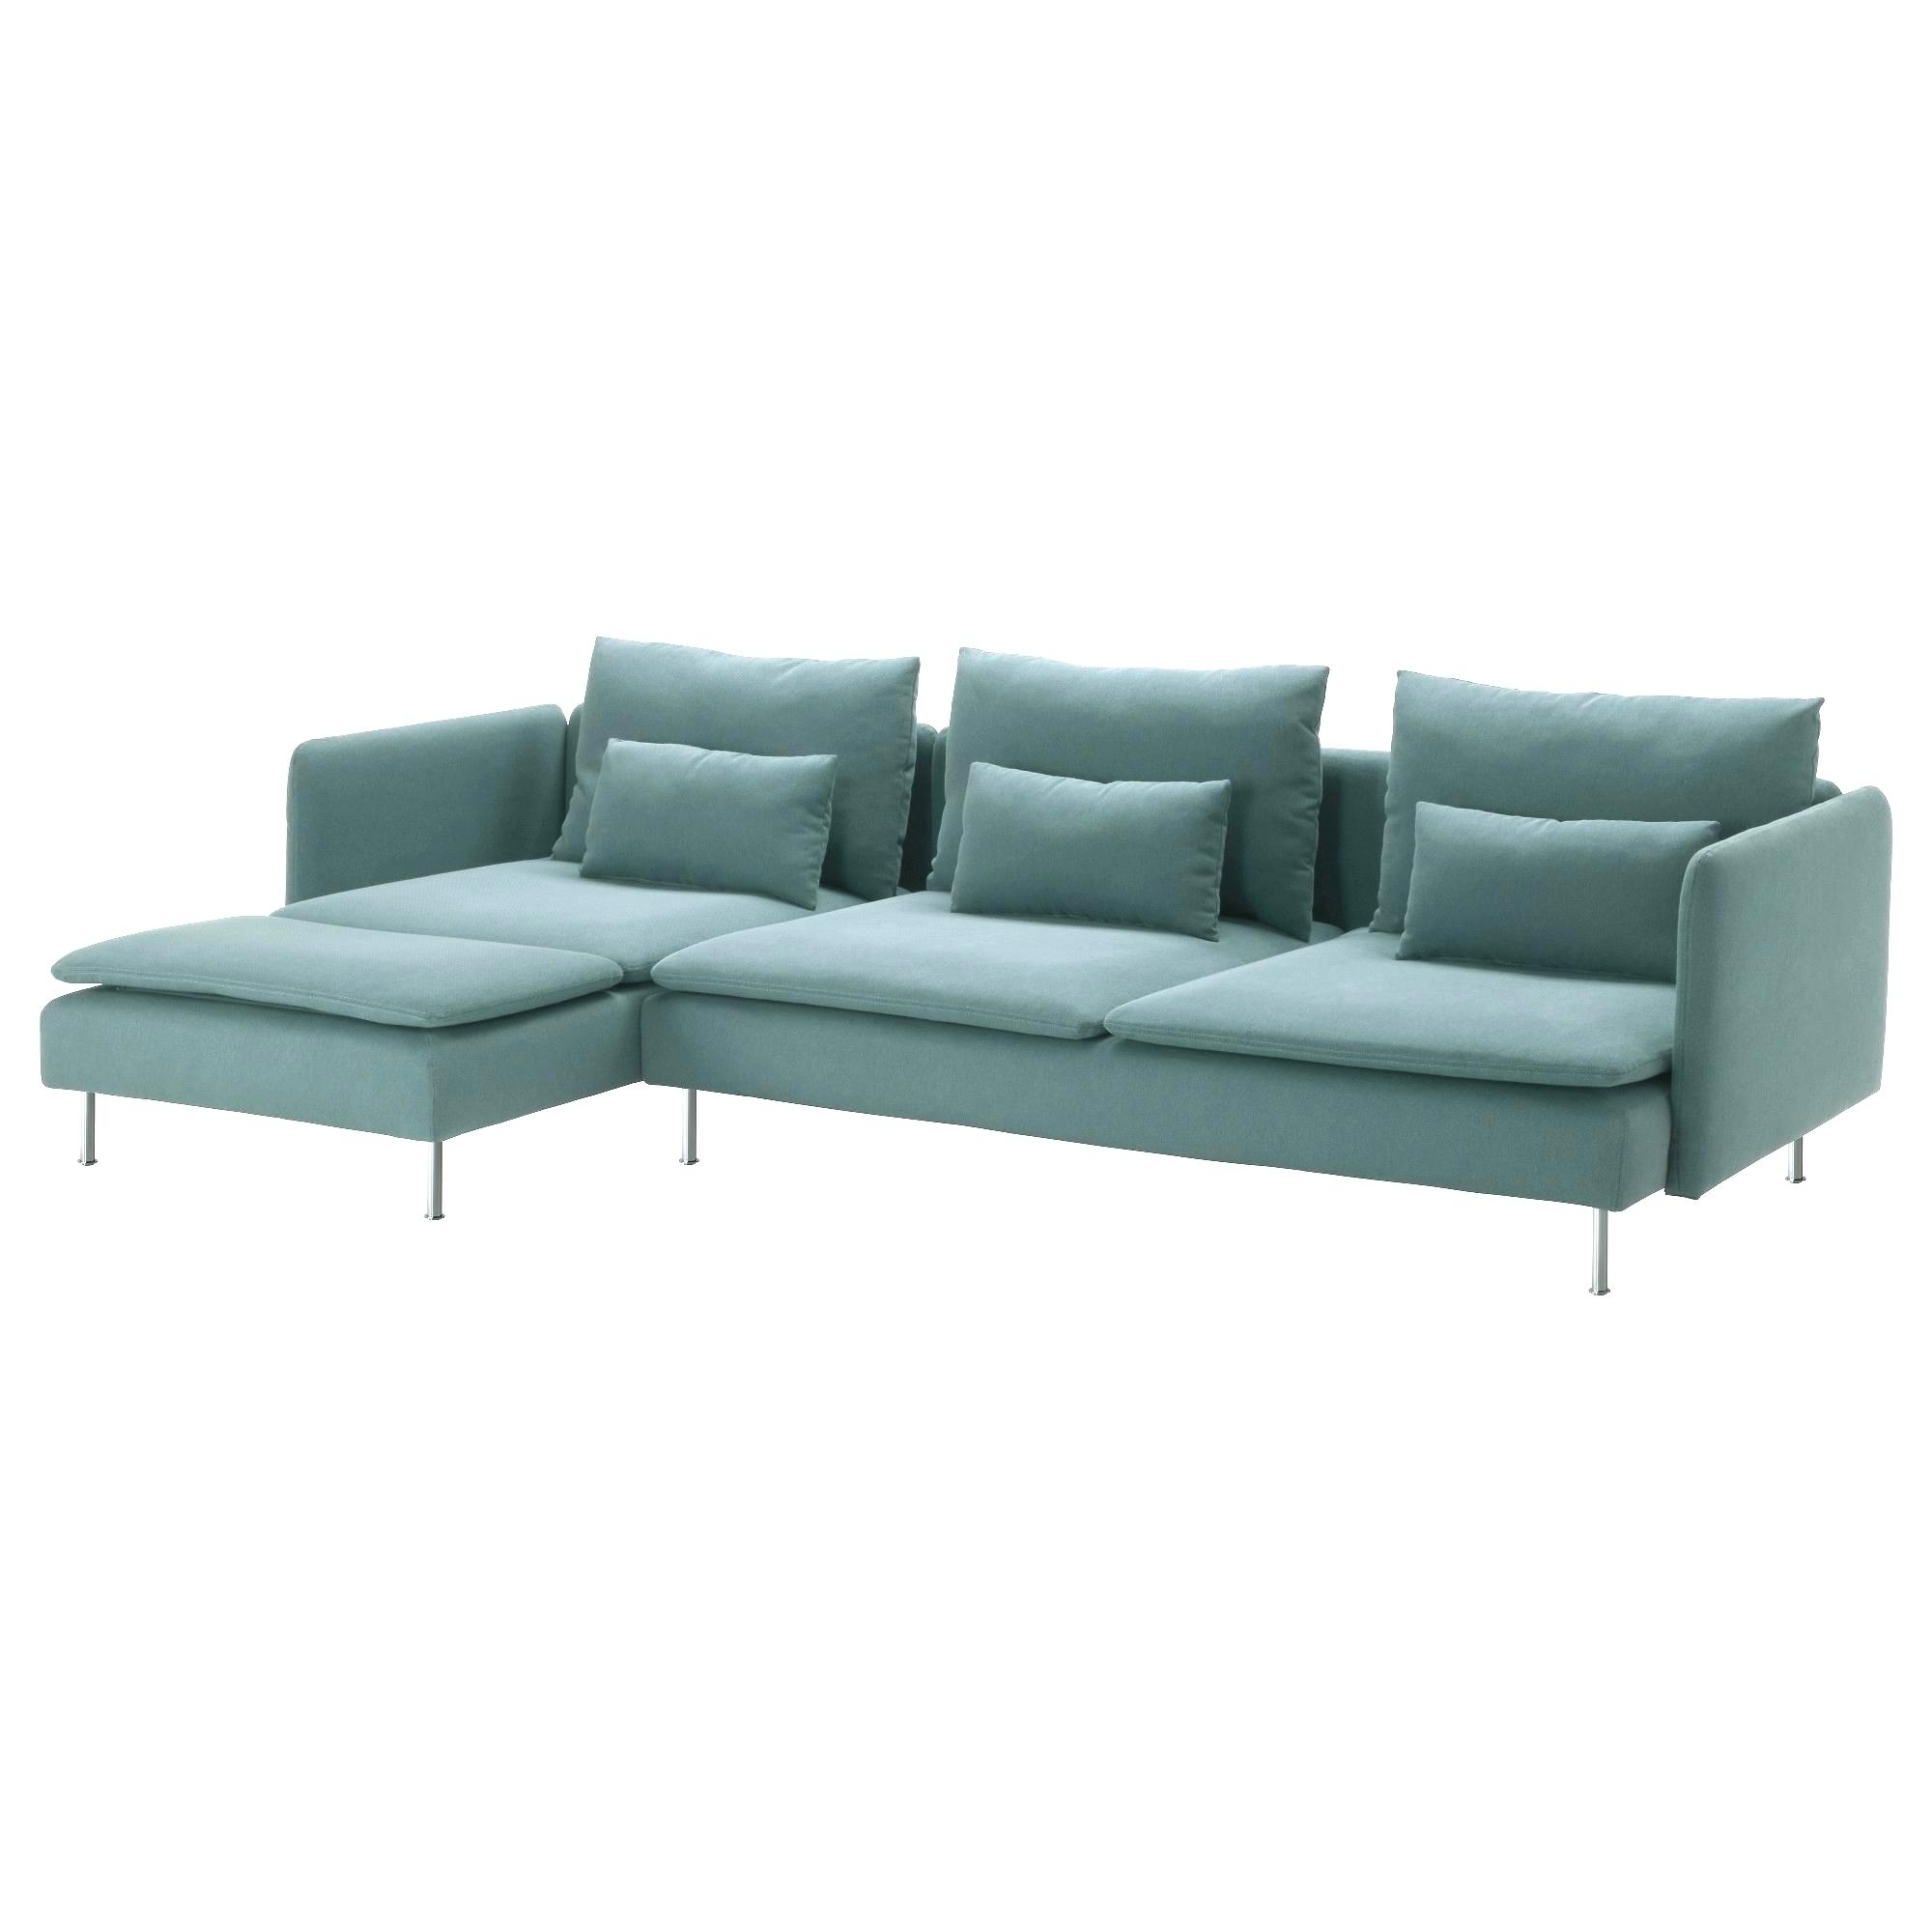 Recliners On Sale Canada 10 Best Ideas Vancouver Bc Canada Sectional Sofas Sofa Ideas